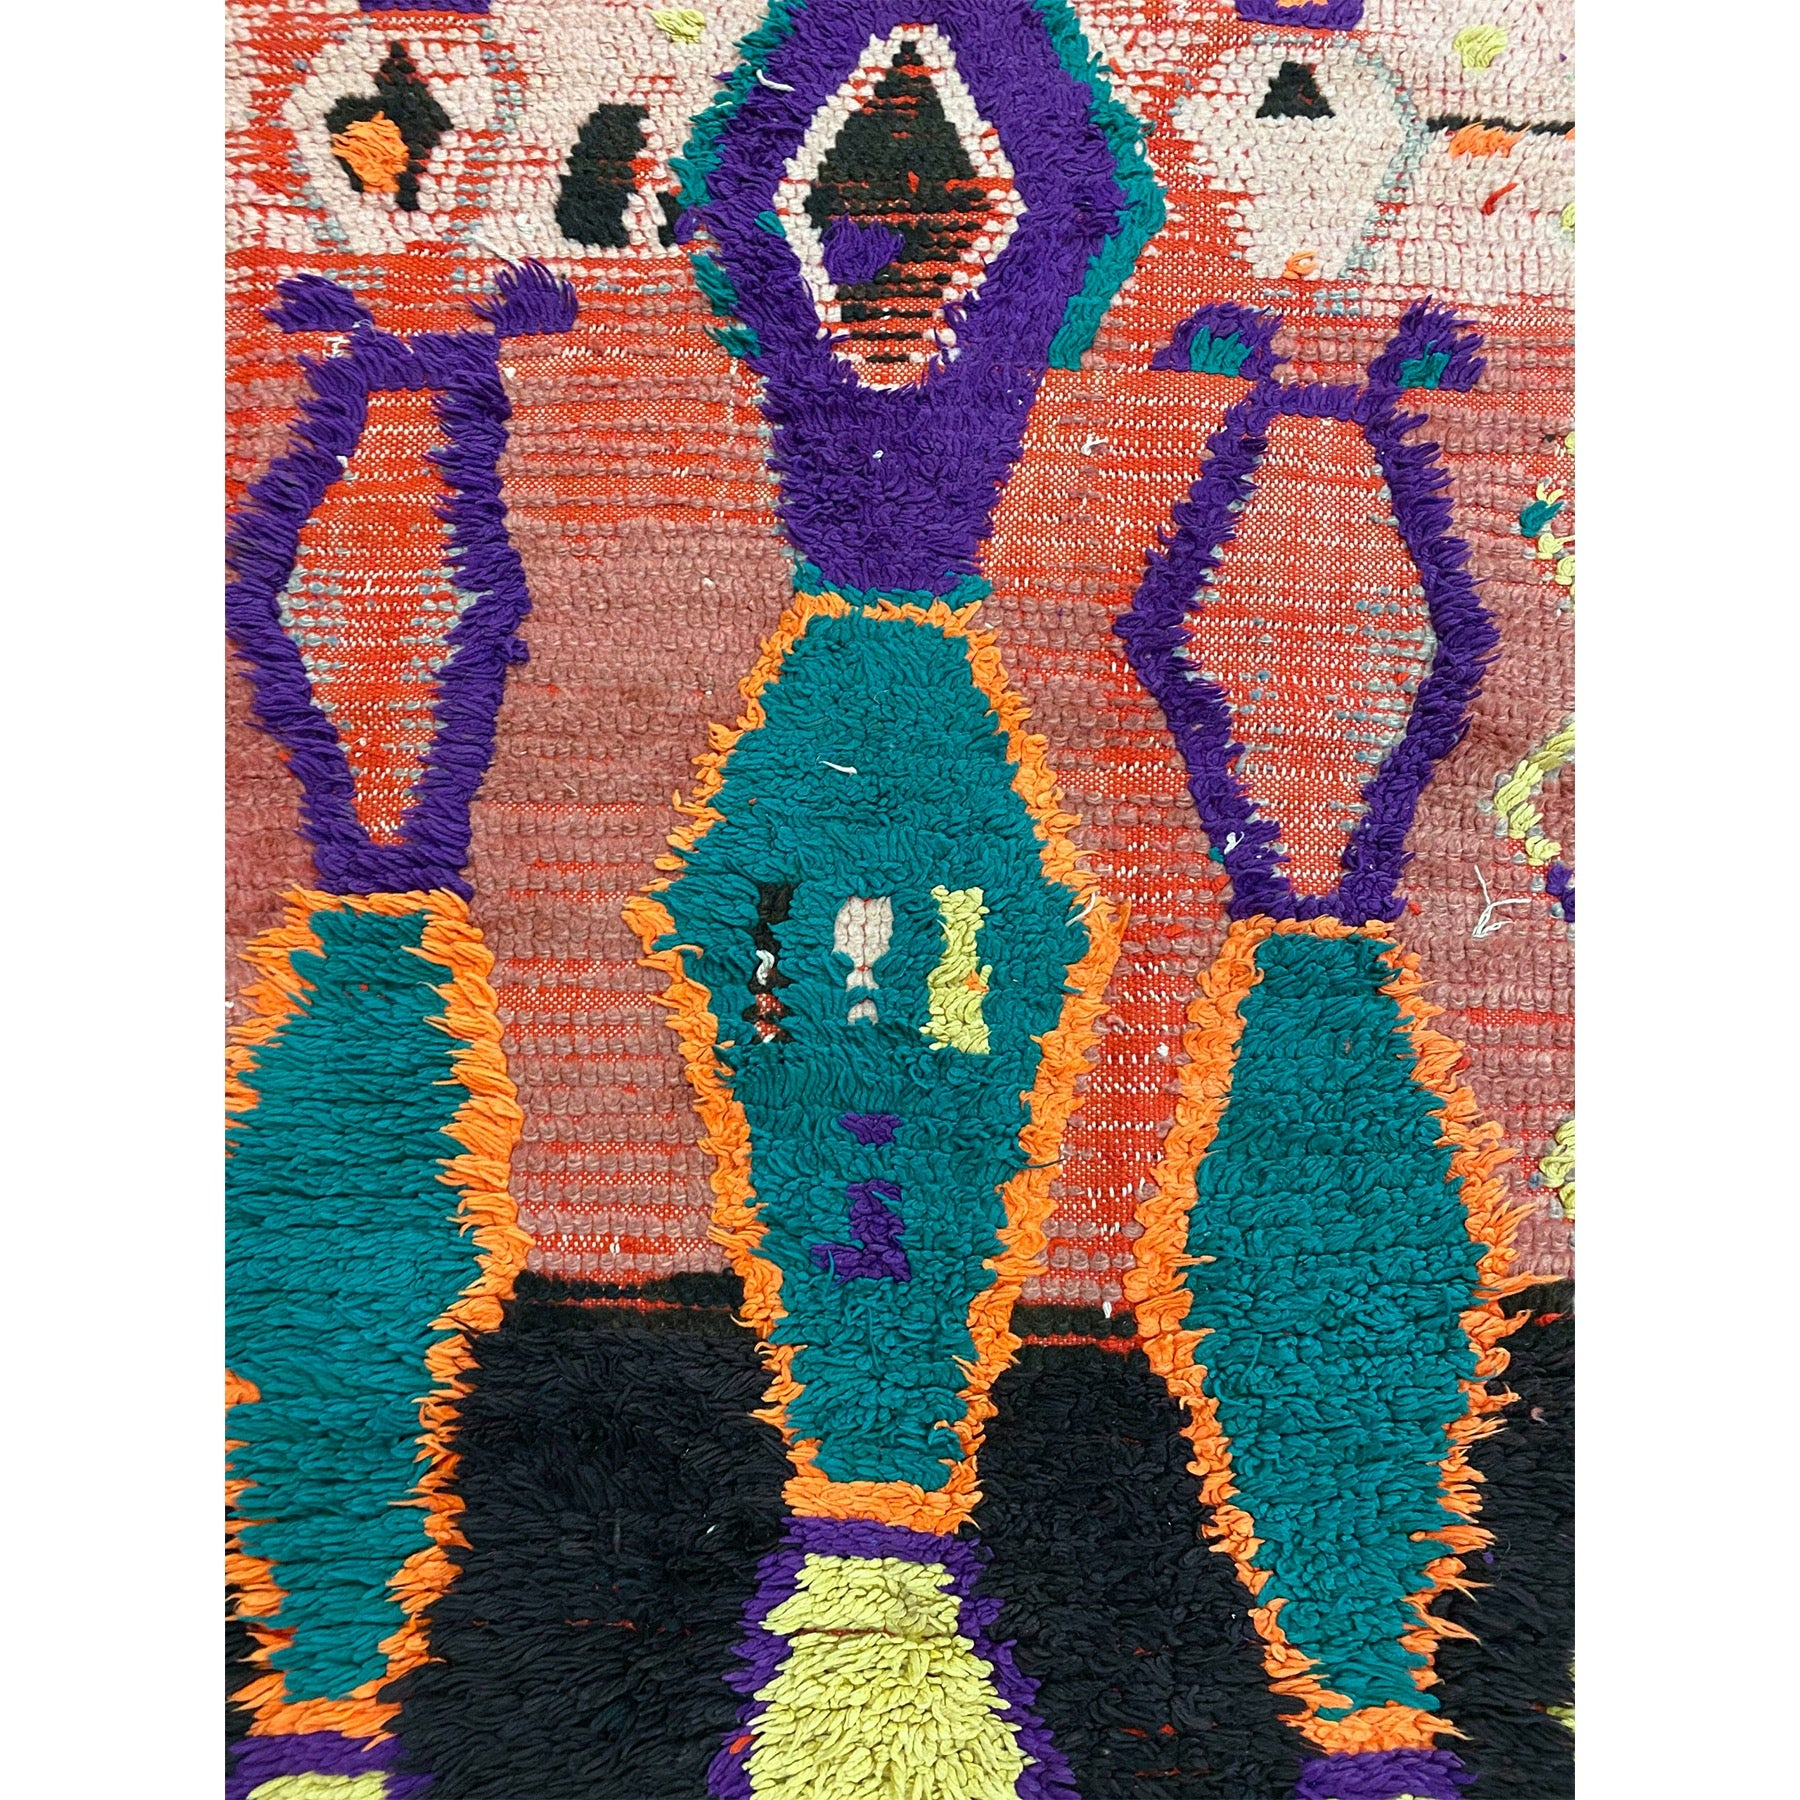 Unique colorful Moroccan berber runner rug - Kantara | Moroccan Rugs